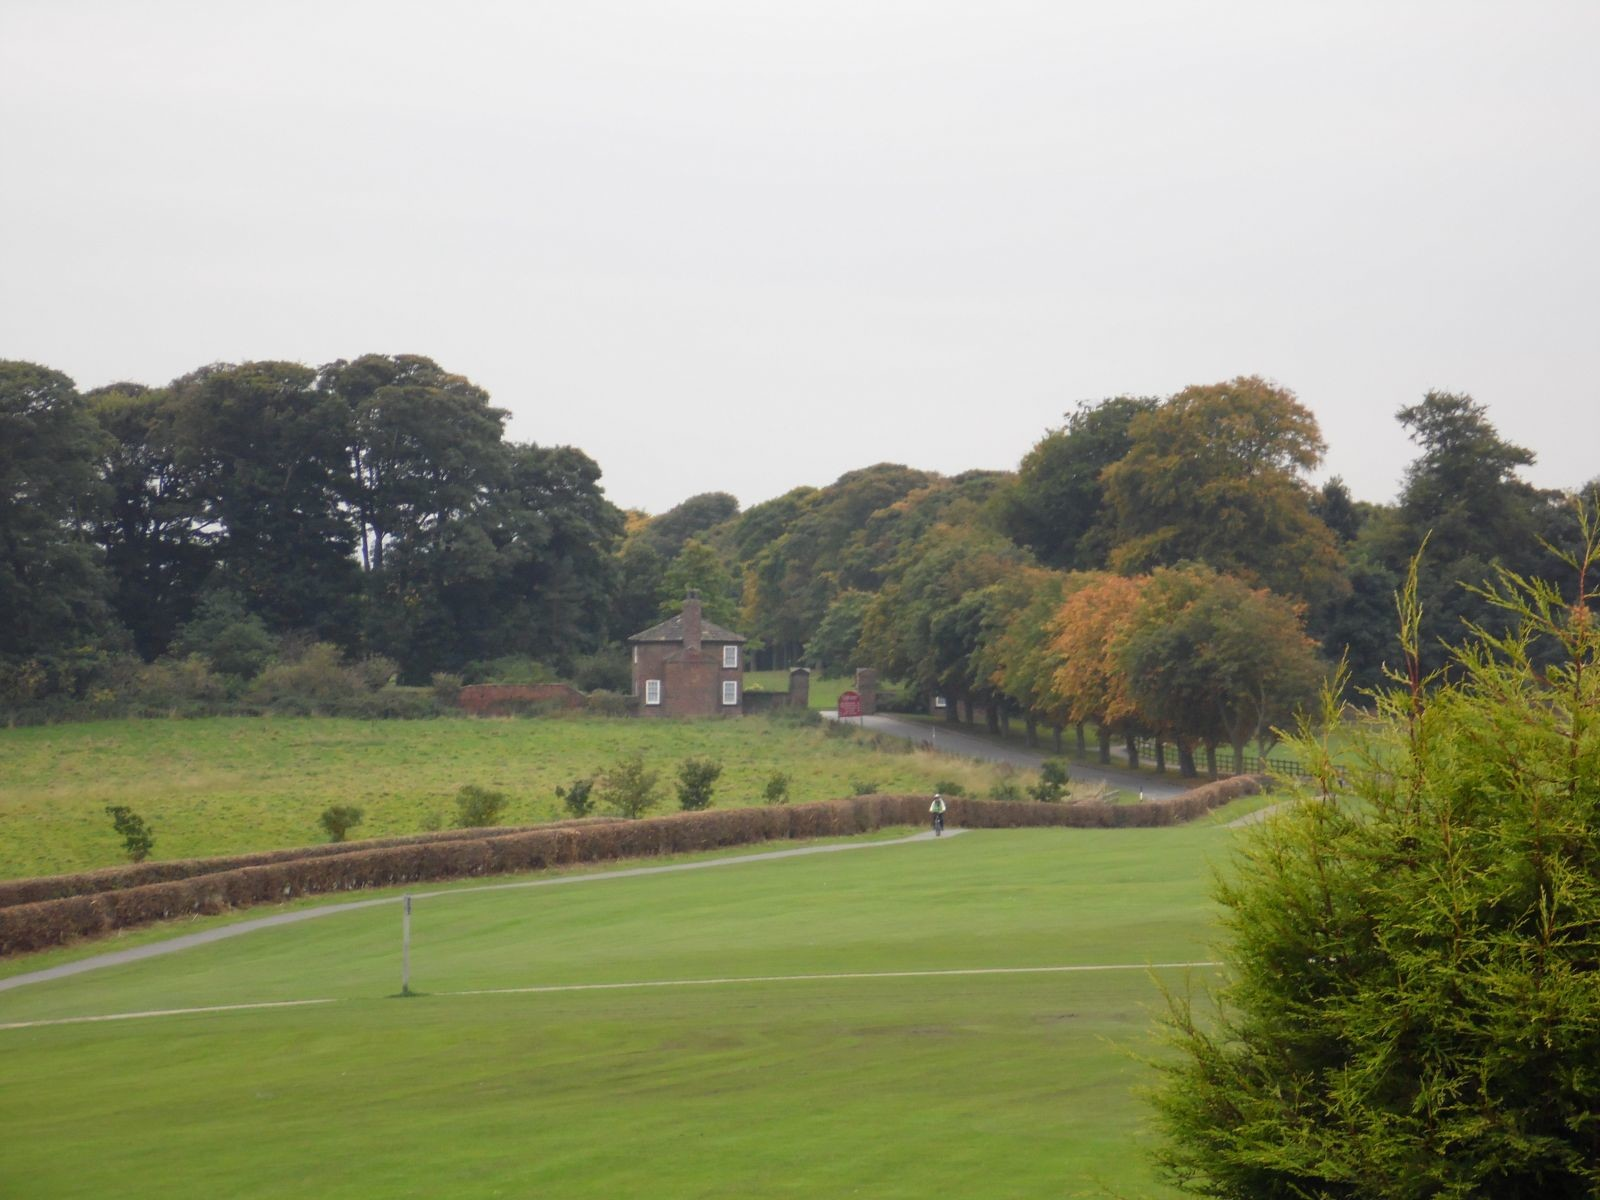 Towards Temple Newsam Park